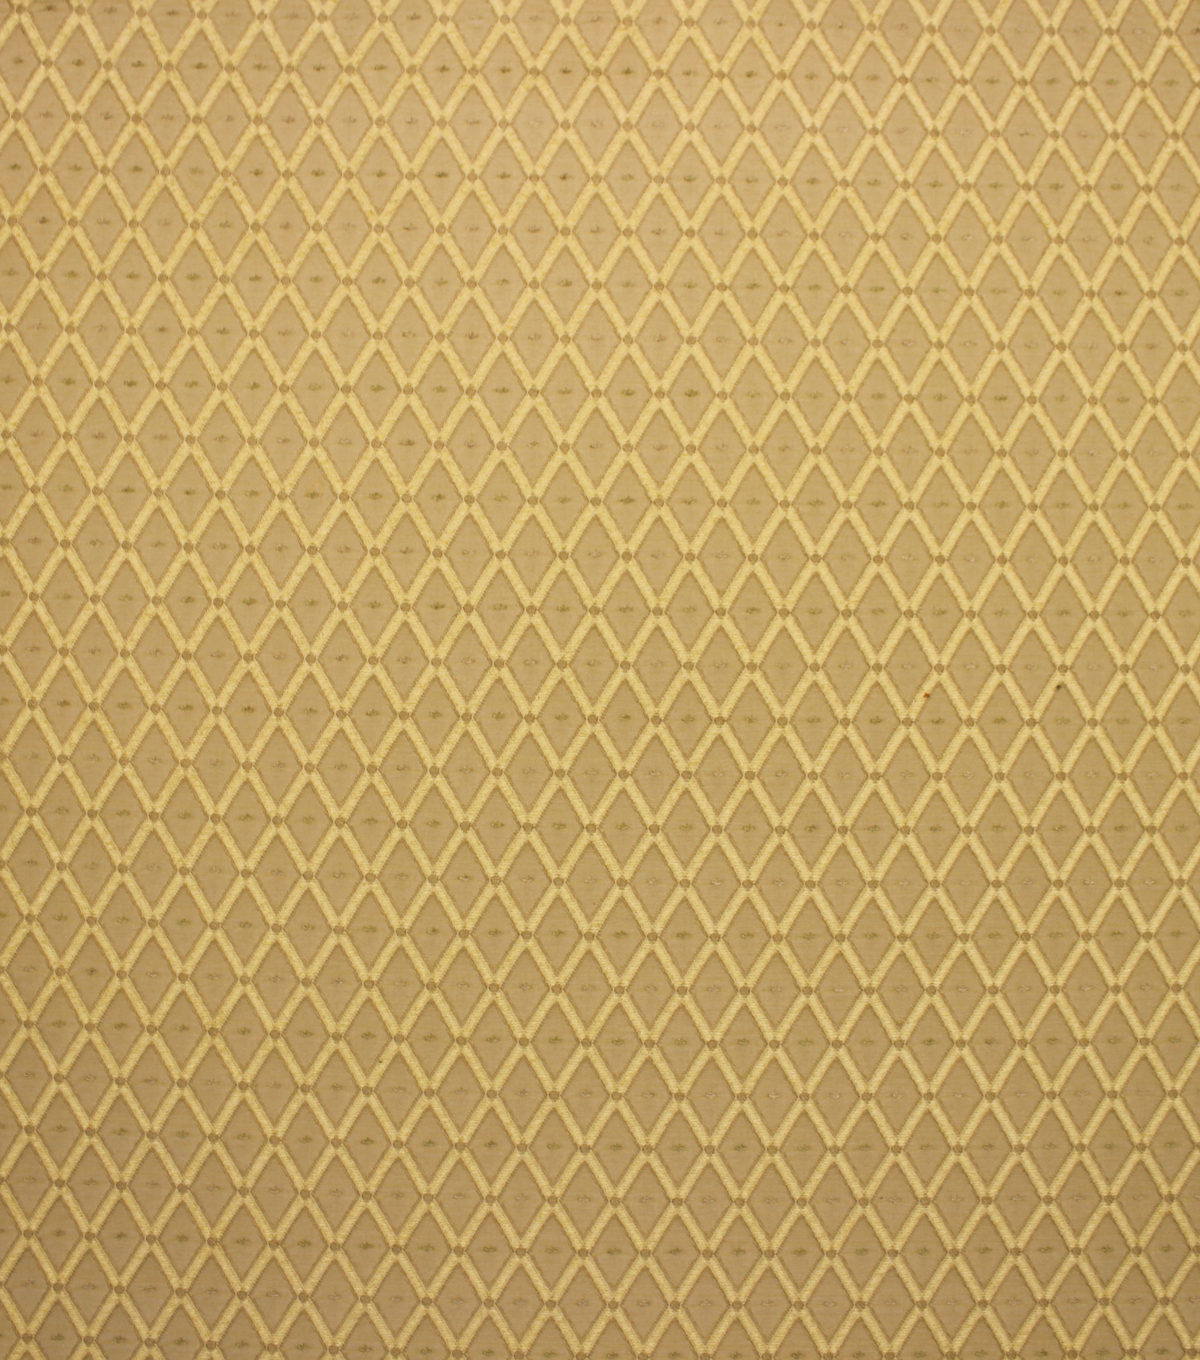 Home Decor 8\u0022x8\u0022 Fabric Swatch-Upholstery Fabric Barrow M6958-5531 Wysteria